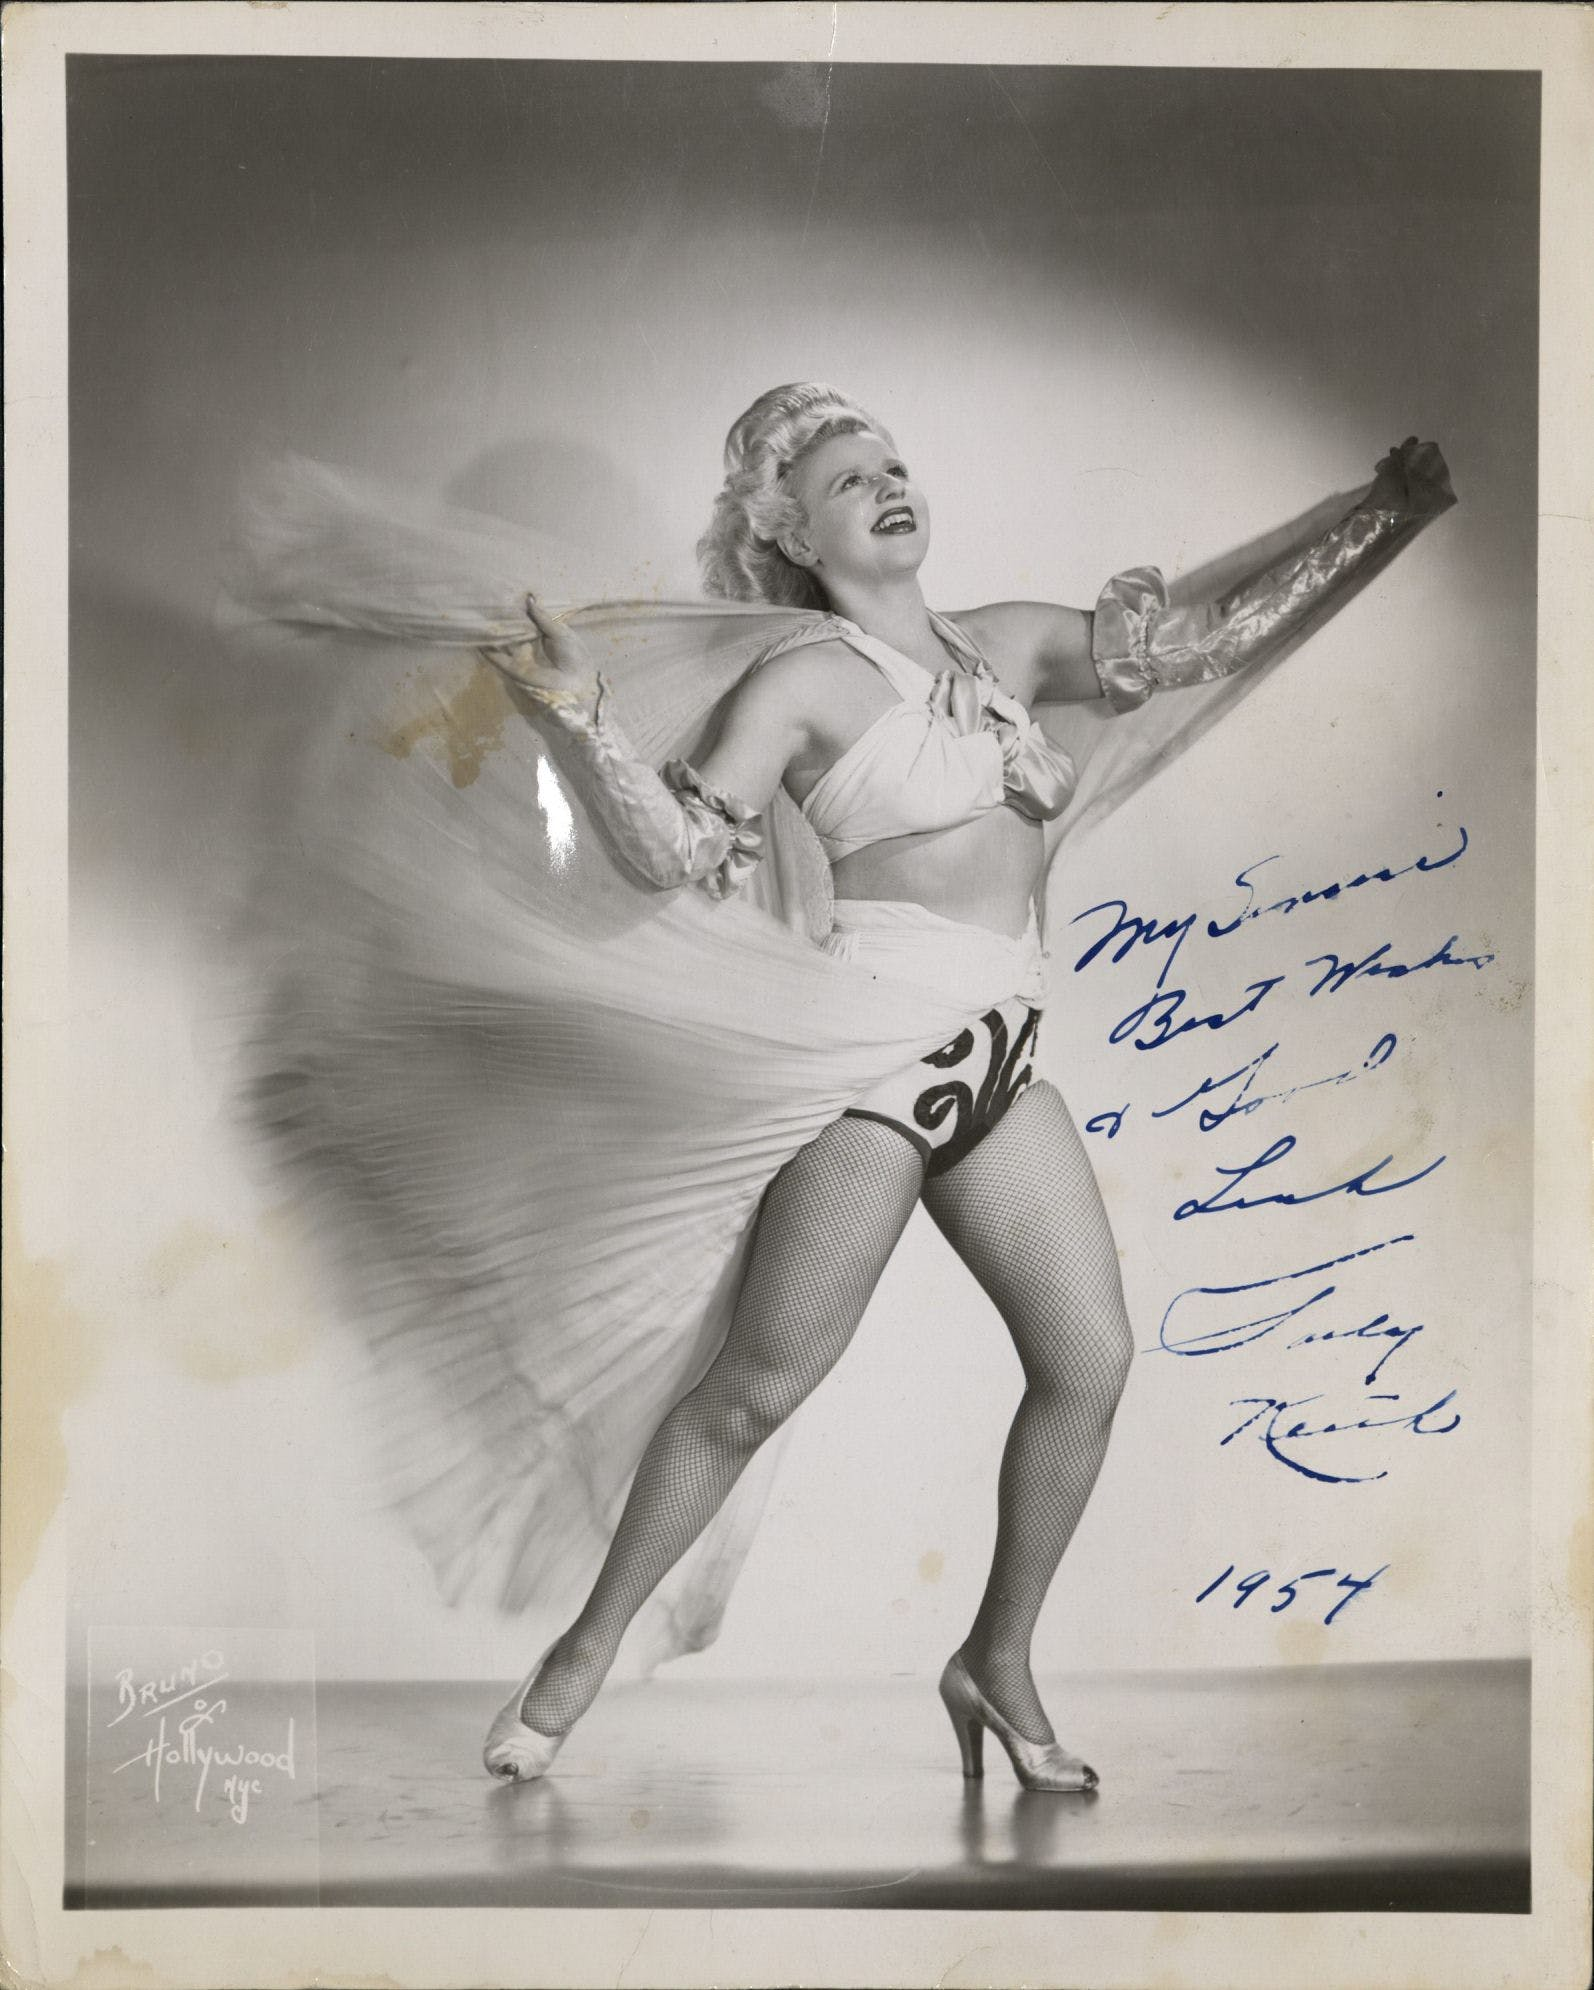 My Great-Aunt Sally Was a Famous Tassel Dancer, but I Keep My Boobs Way Closer to My Chest - My grandfather was one of ten children. His vocation—electrician—landed him right smack in the middle of his siblings' respectability spectrum, which ranged from orthodox rabbi to burlesque dancer. This burlesque dancer was my great aunt Sally, who in the 1940s was an institution at Boston's Scollay Square night club, The Crawford House….[Continue reading]